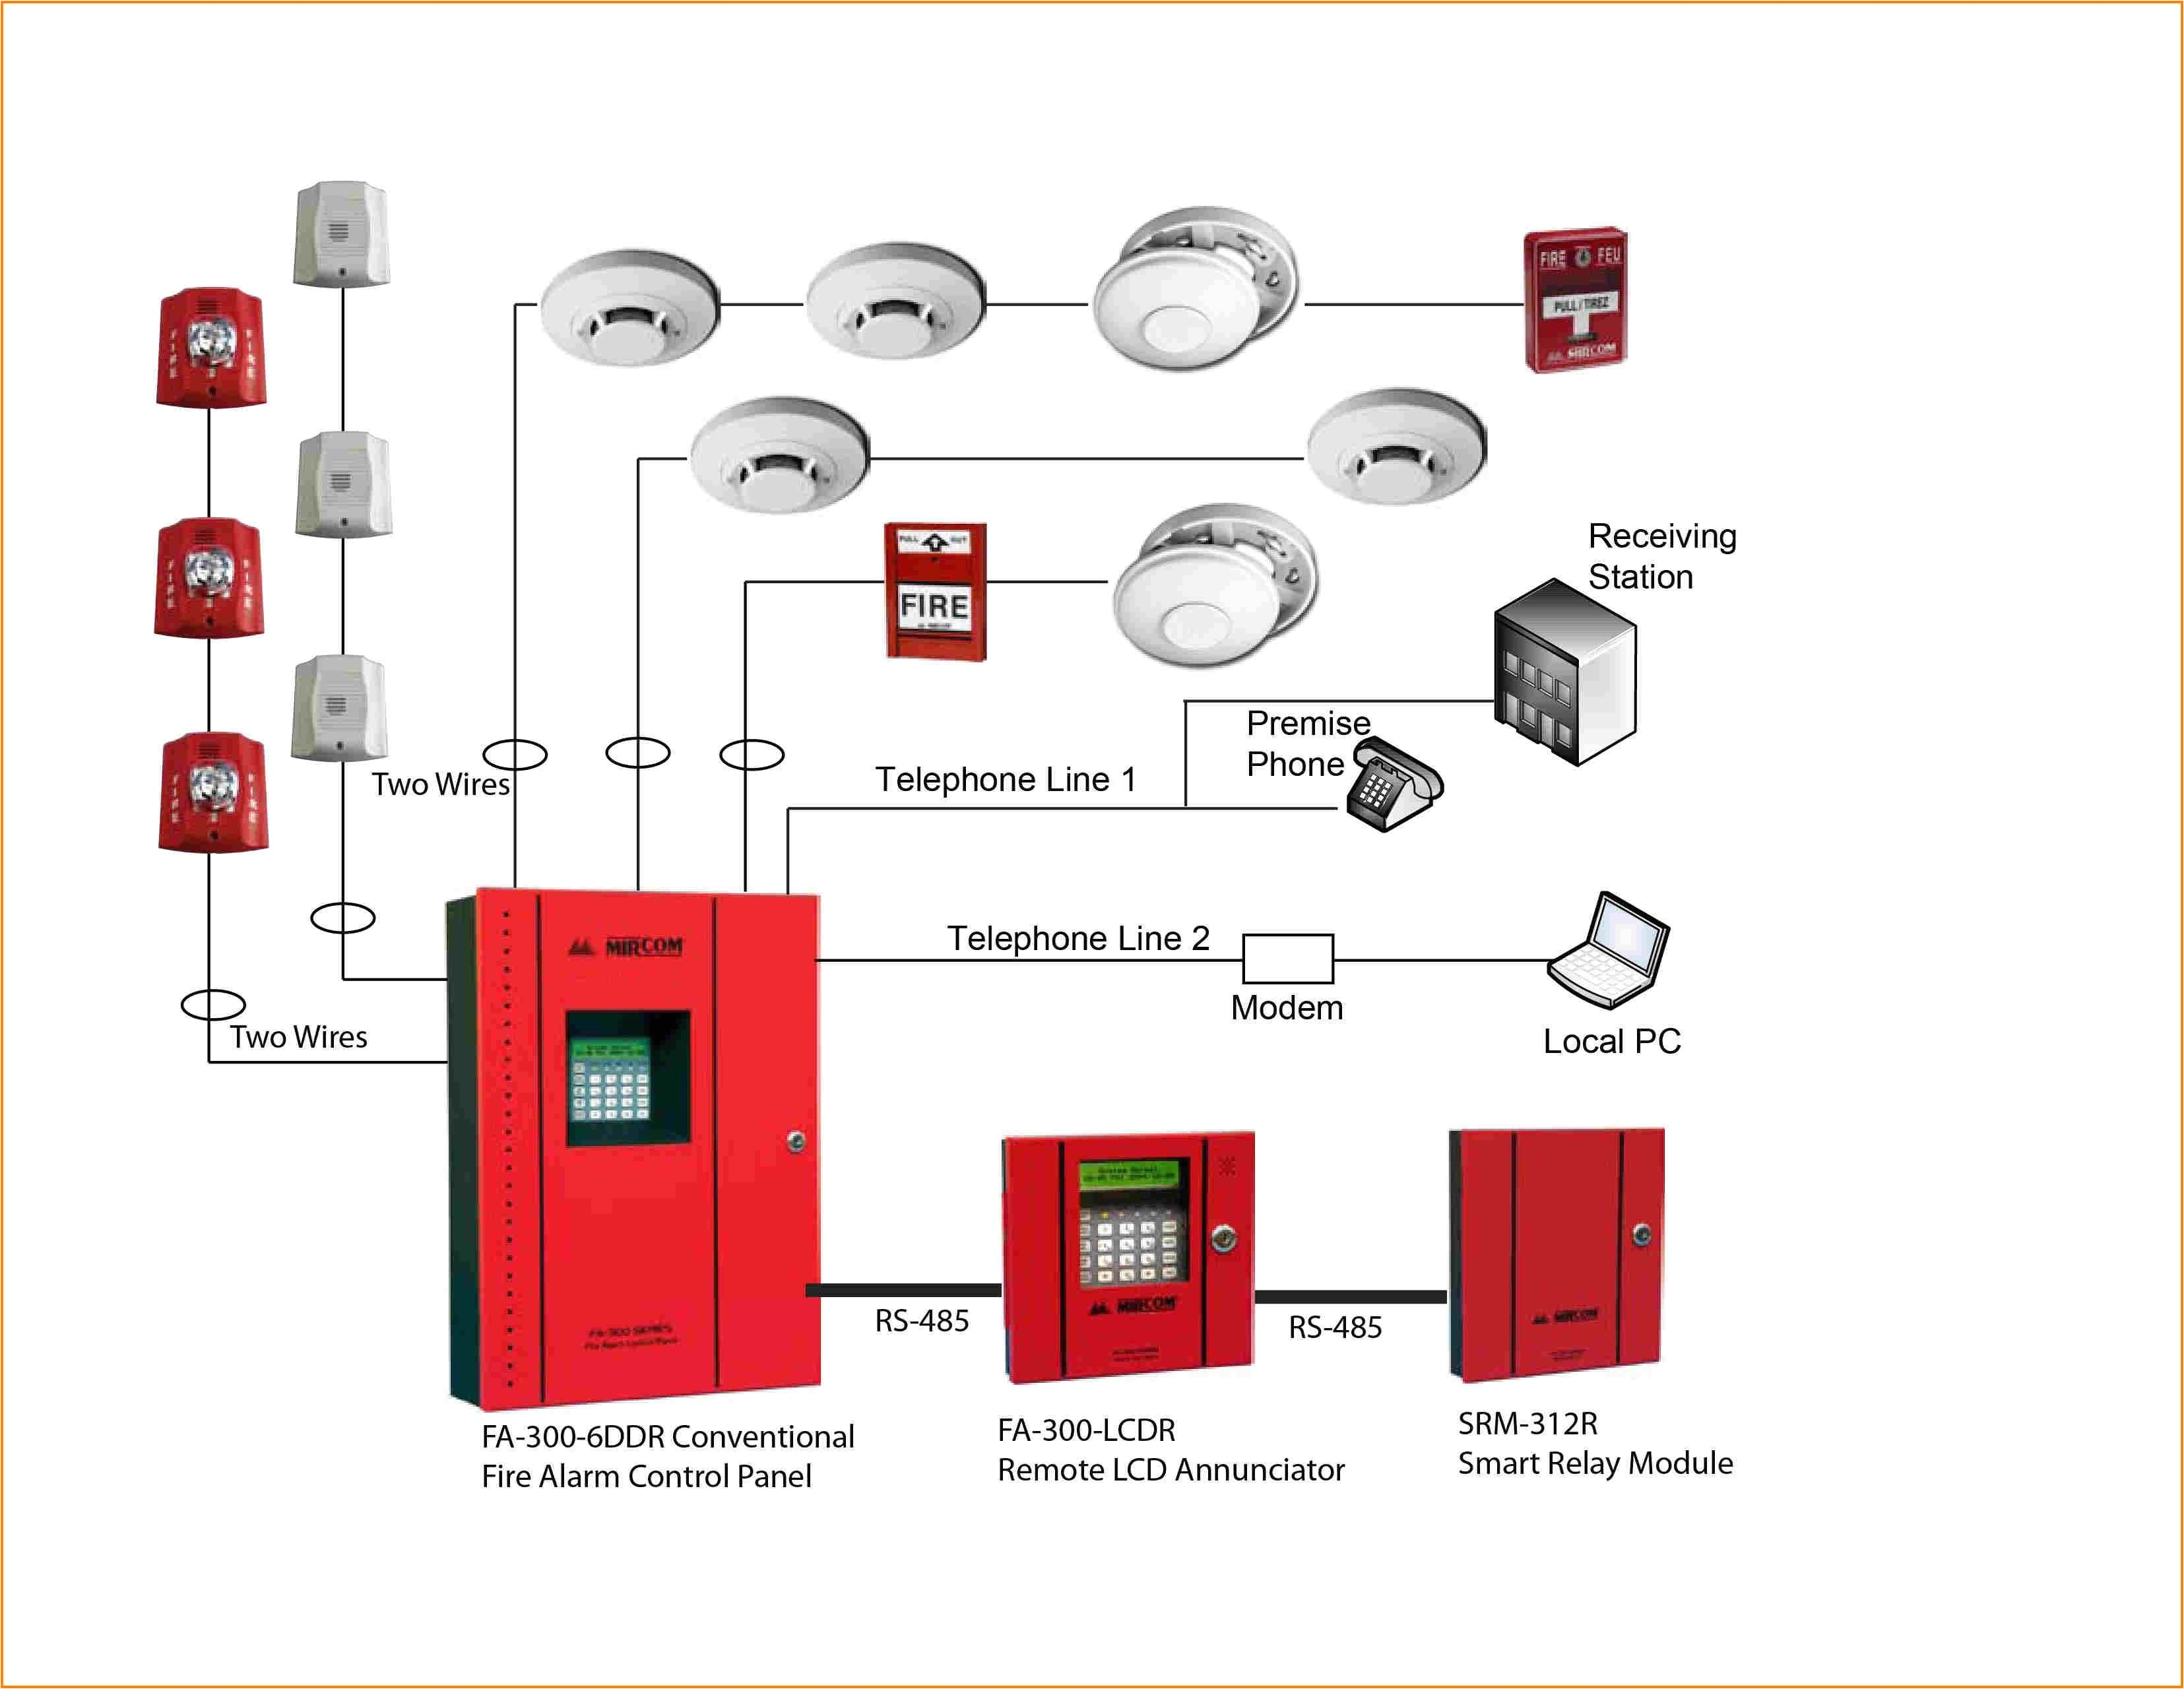 fire station siren wiring diagram wiring diagram schematic fire alarm pull station wiring diagram wiring diagram